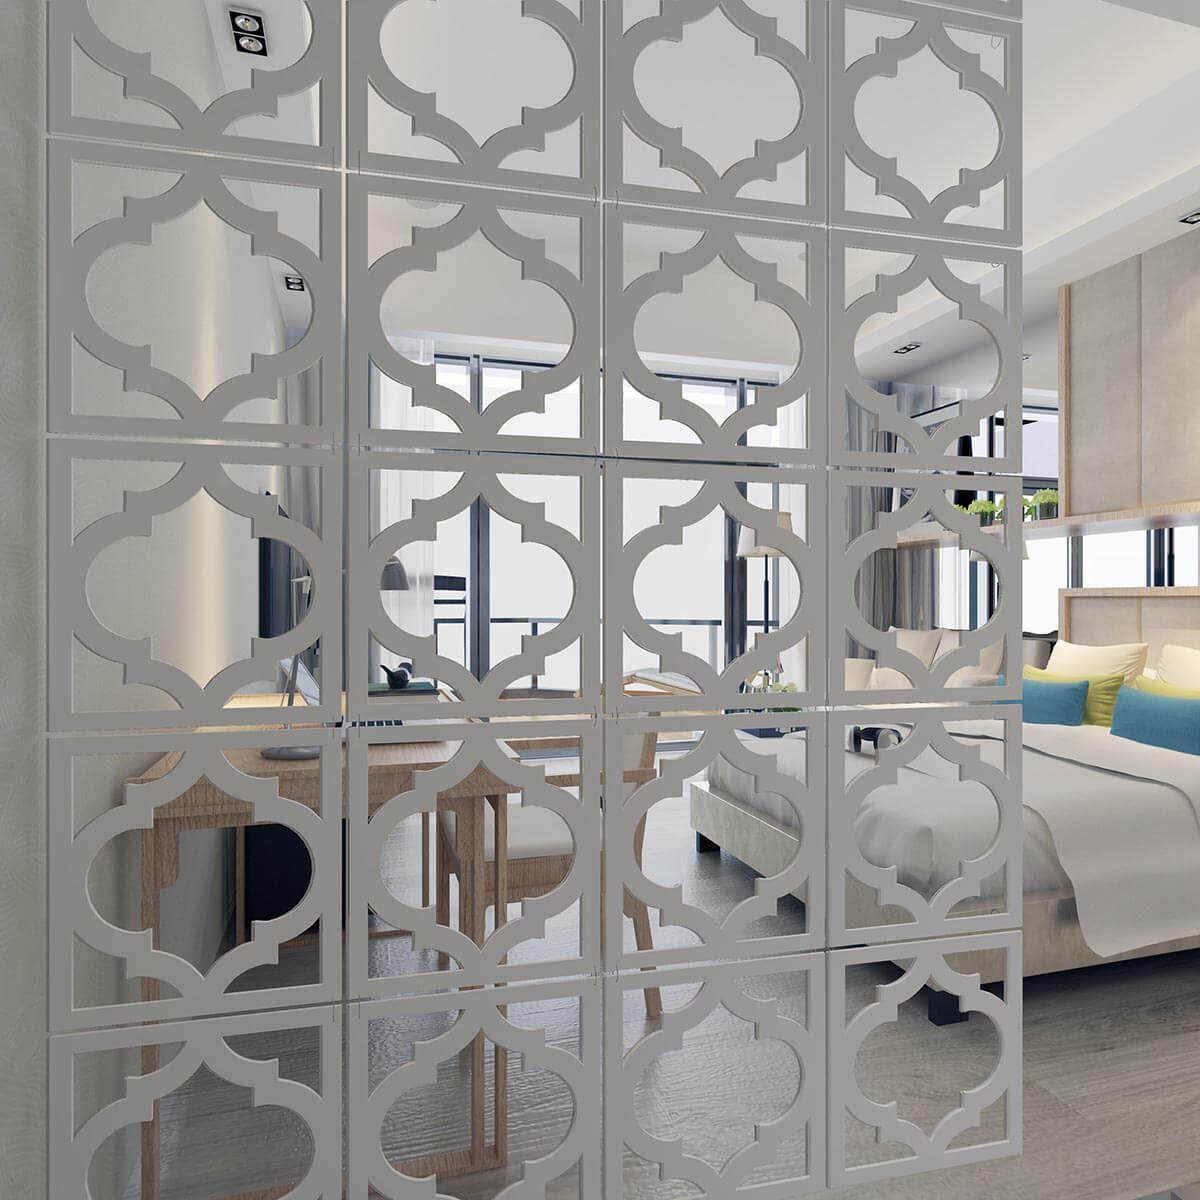 Trellis Pattern Adjustable Hanging Room Divider